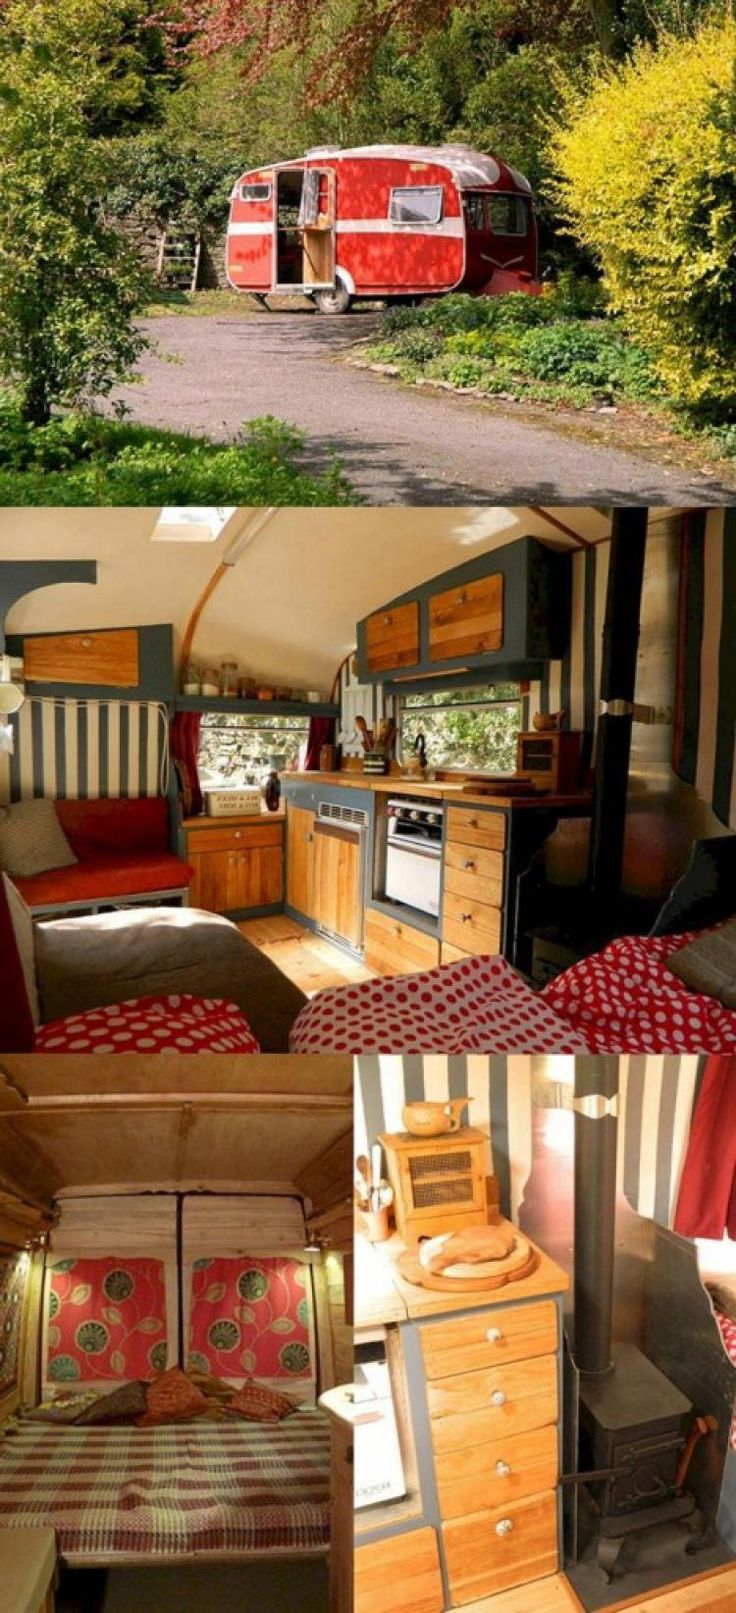 Before And After RV Remodel Ideas Vintagecampers in 2020